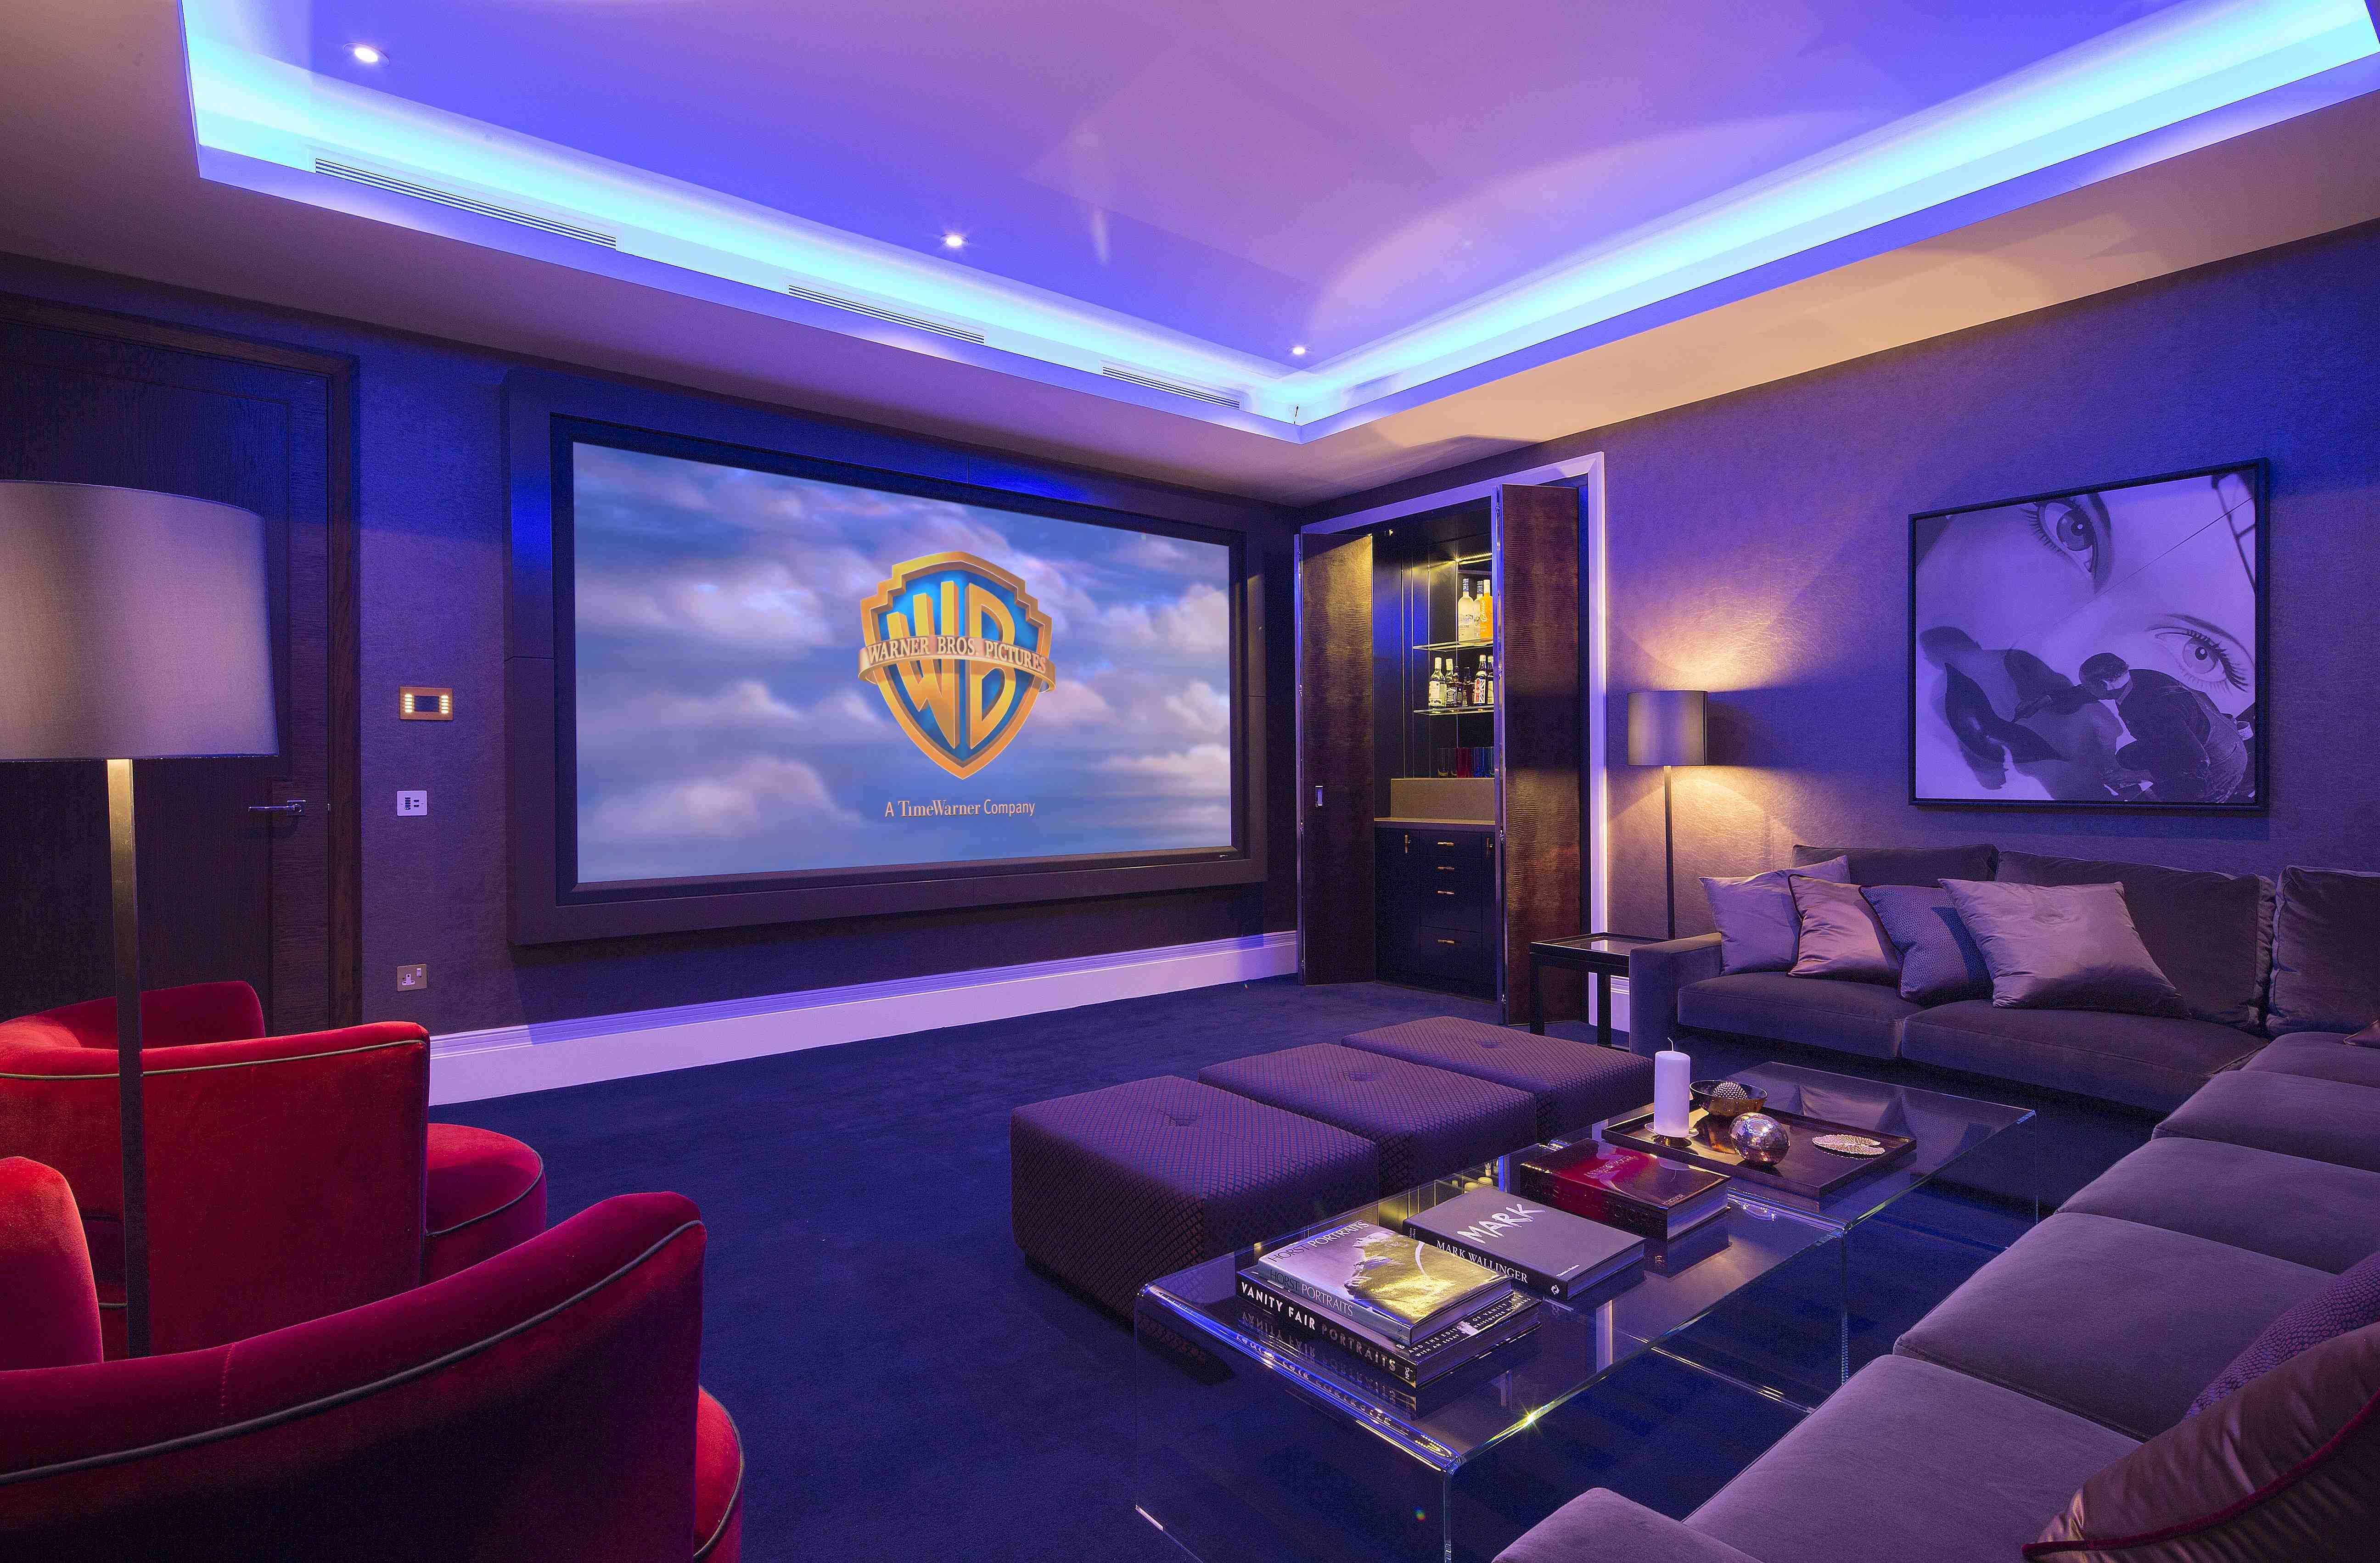 Pin by ki🥀 on h o m e | Pinterest | Movie projector, Movie rooms ...